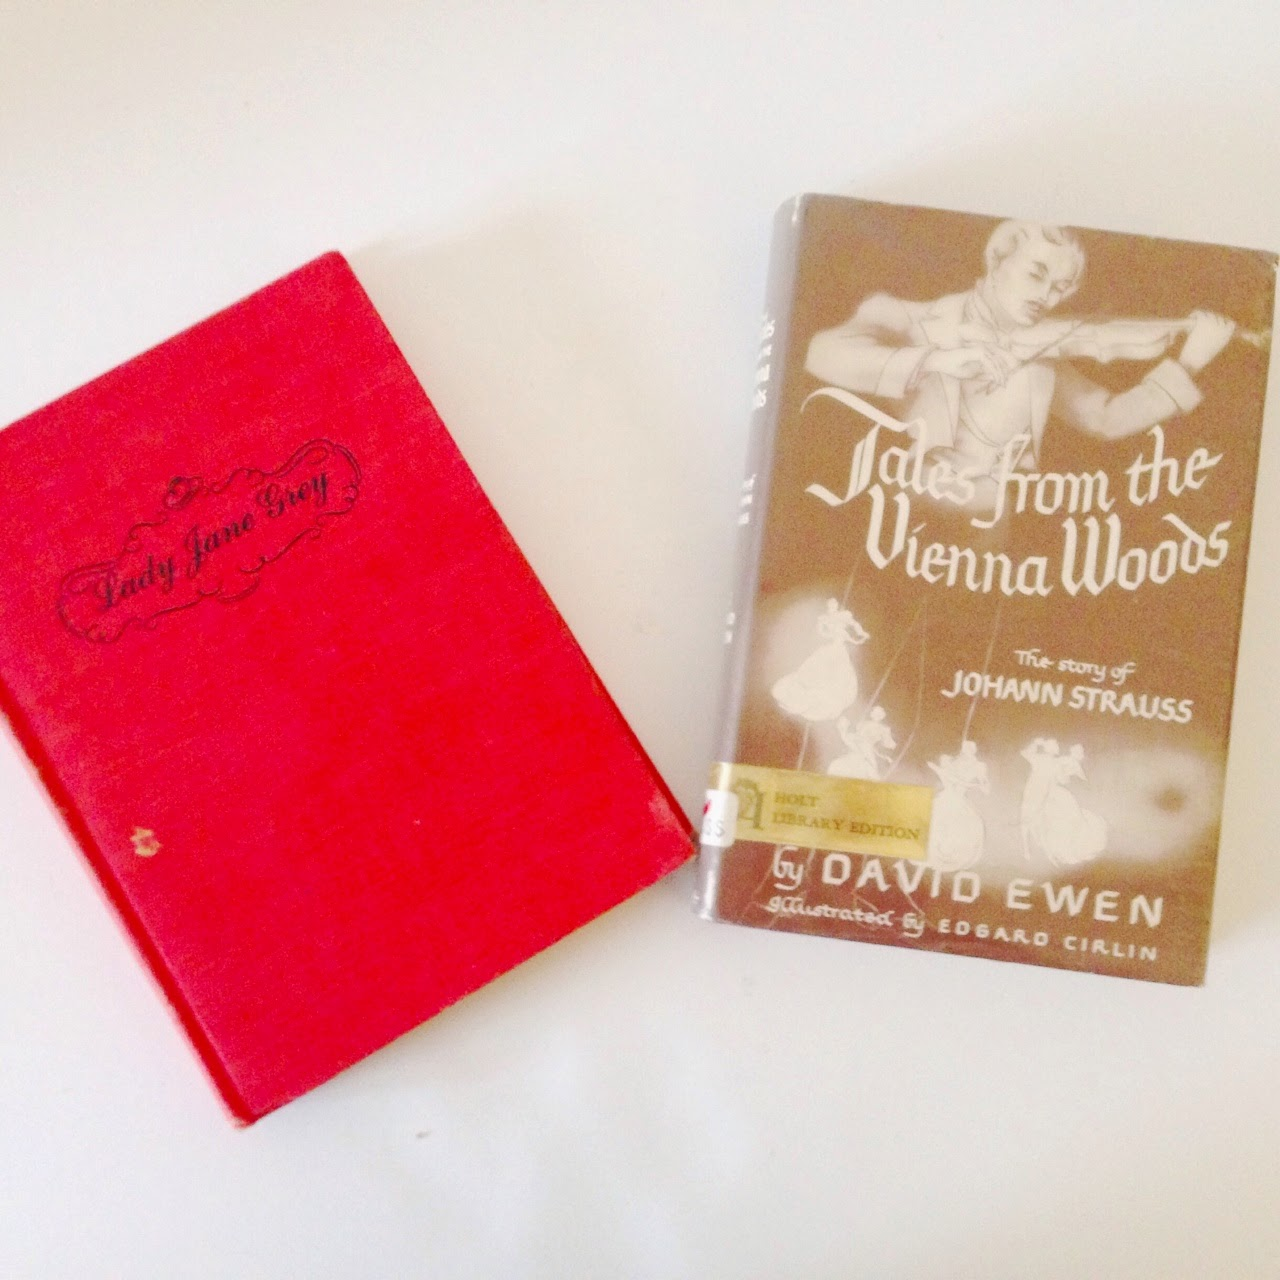 Timeless books...lessons from the past